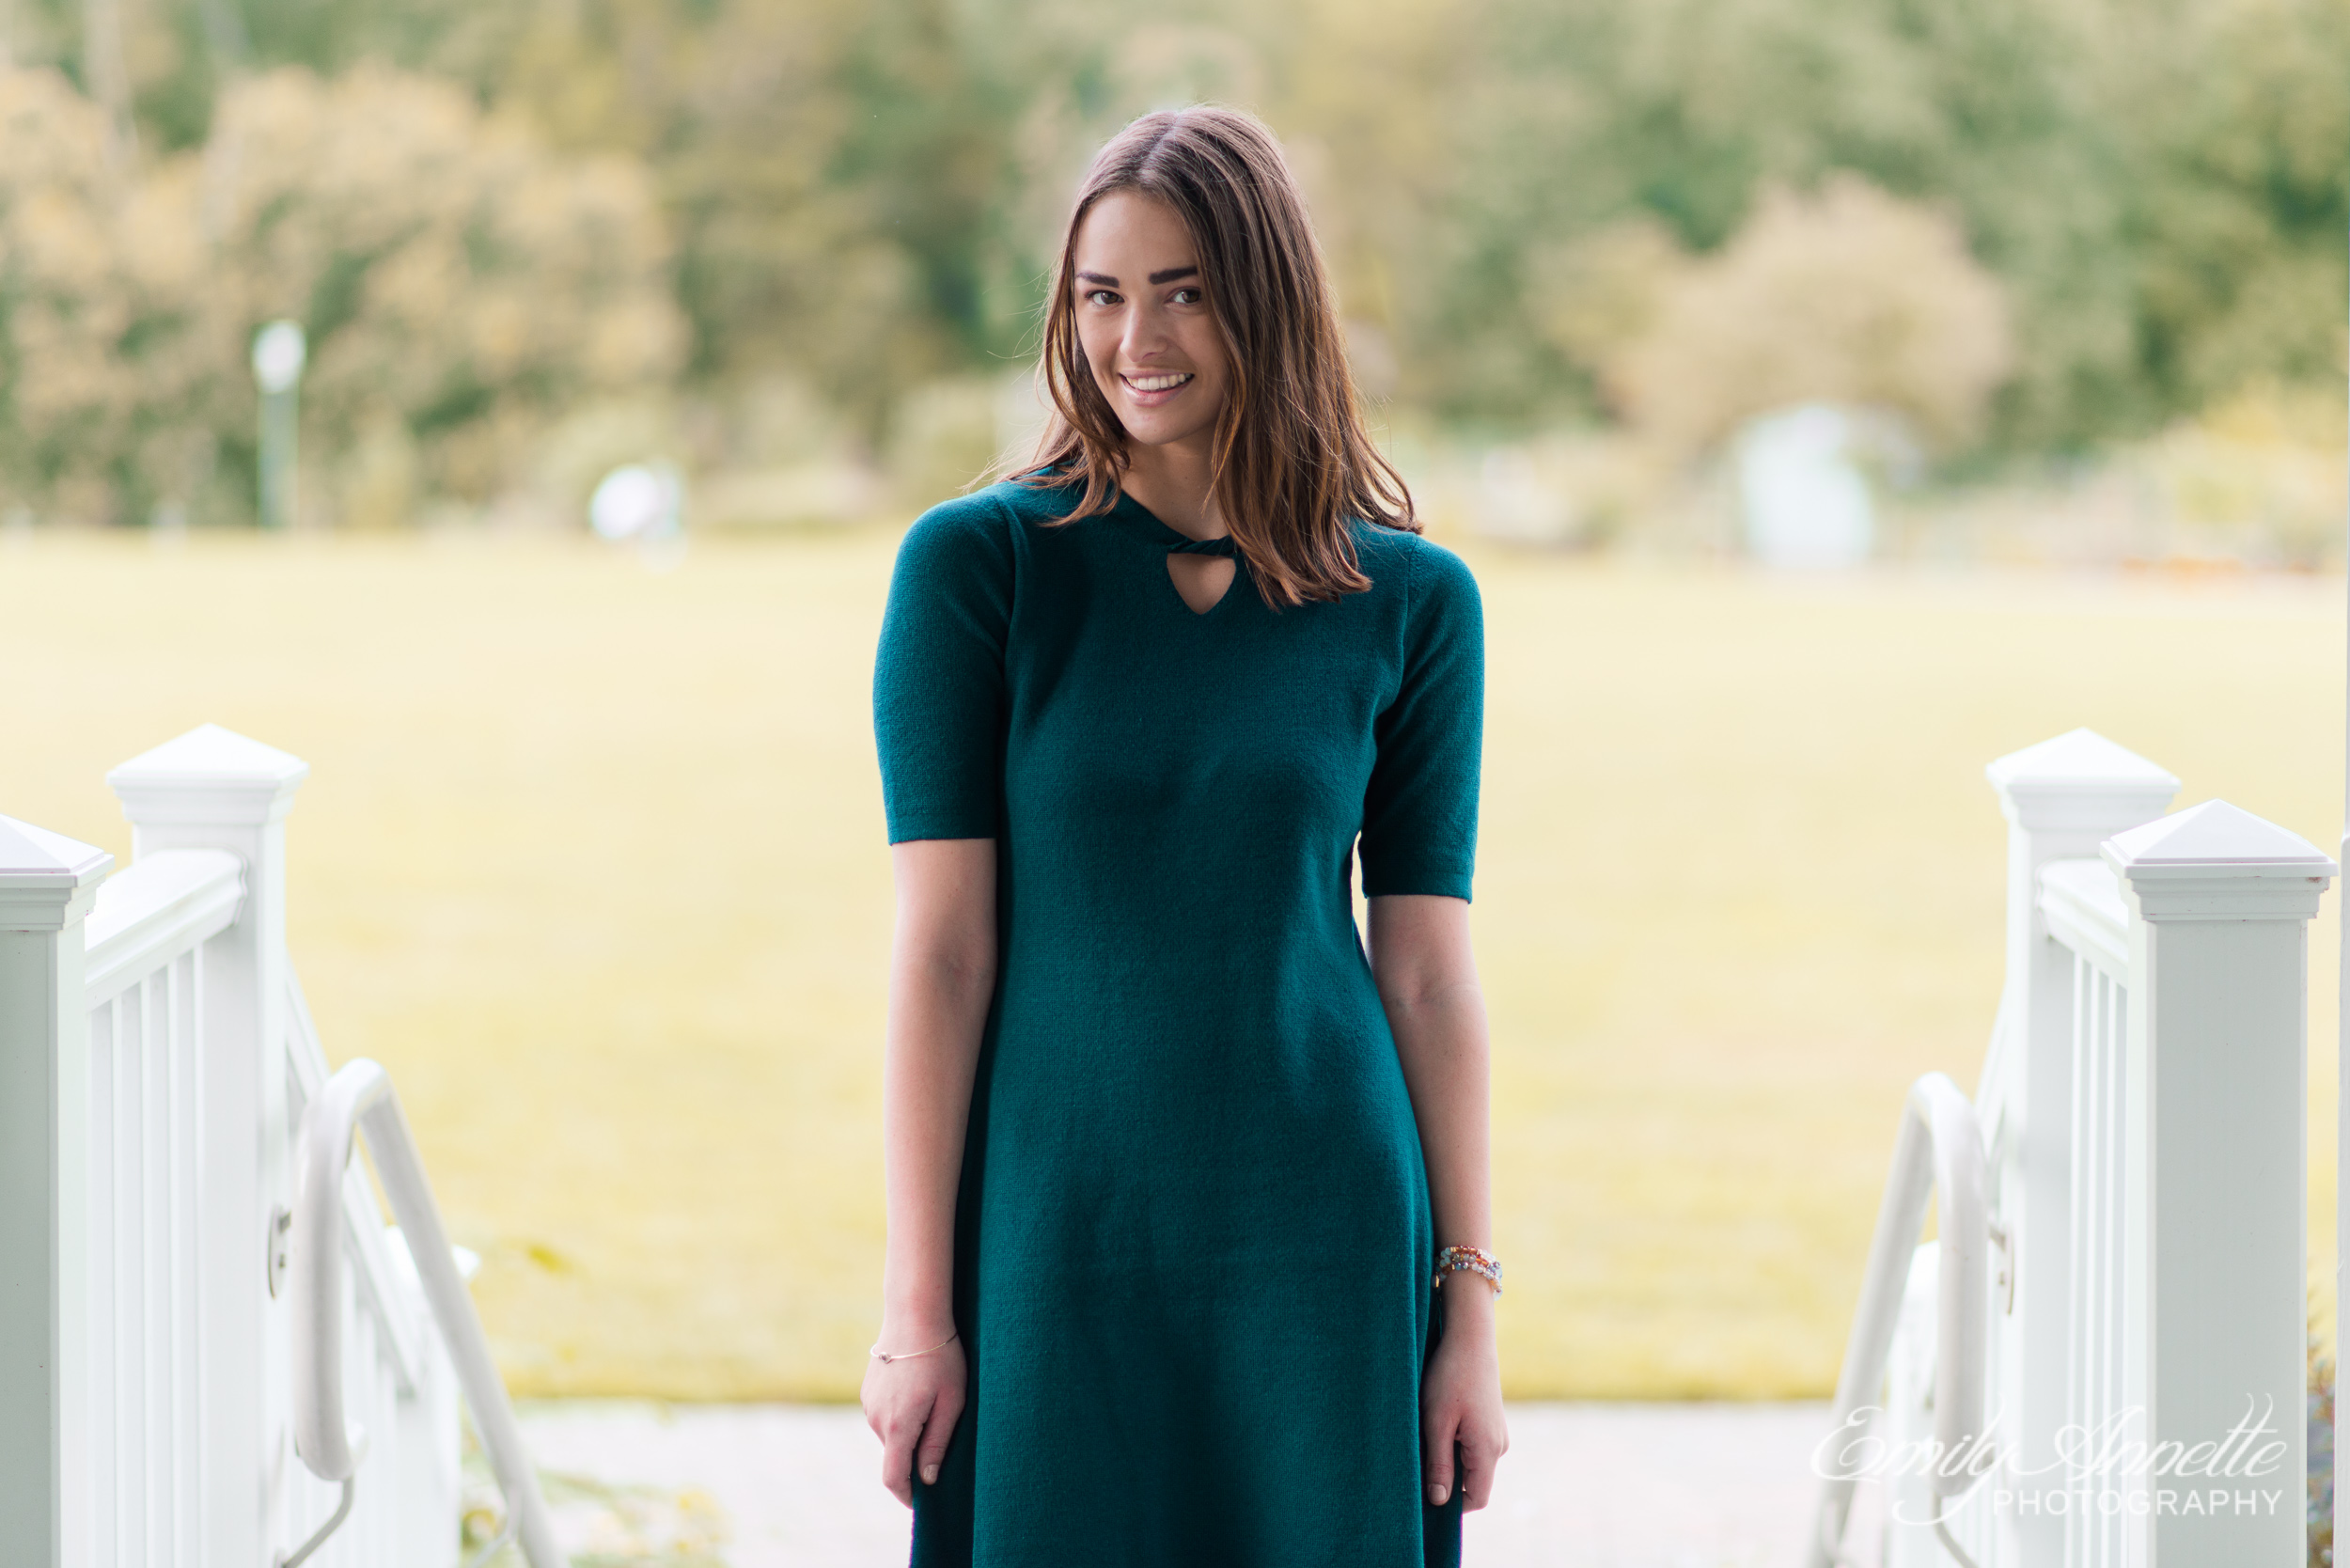 A young woman stands in Green Spring Gardens in Fairfax, Virginia